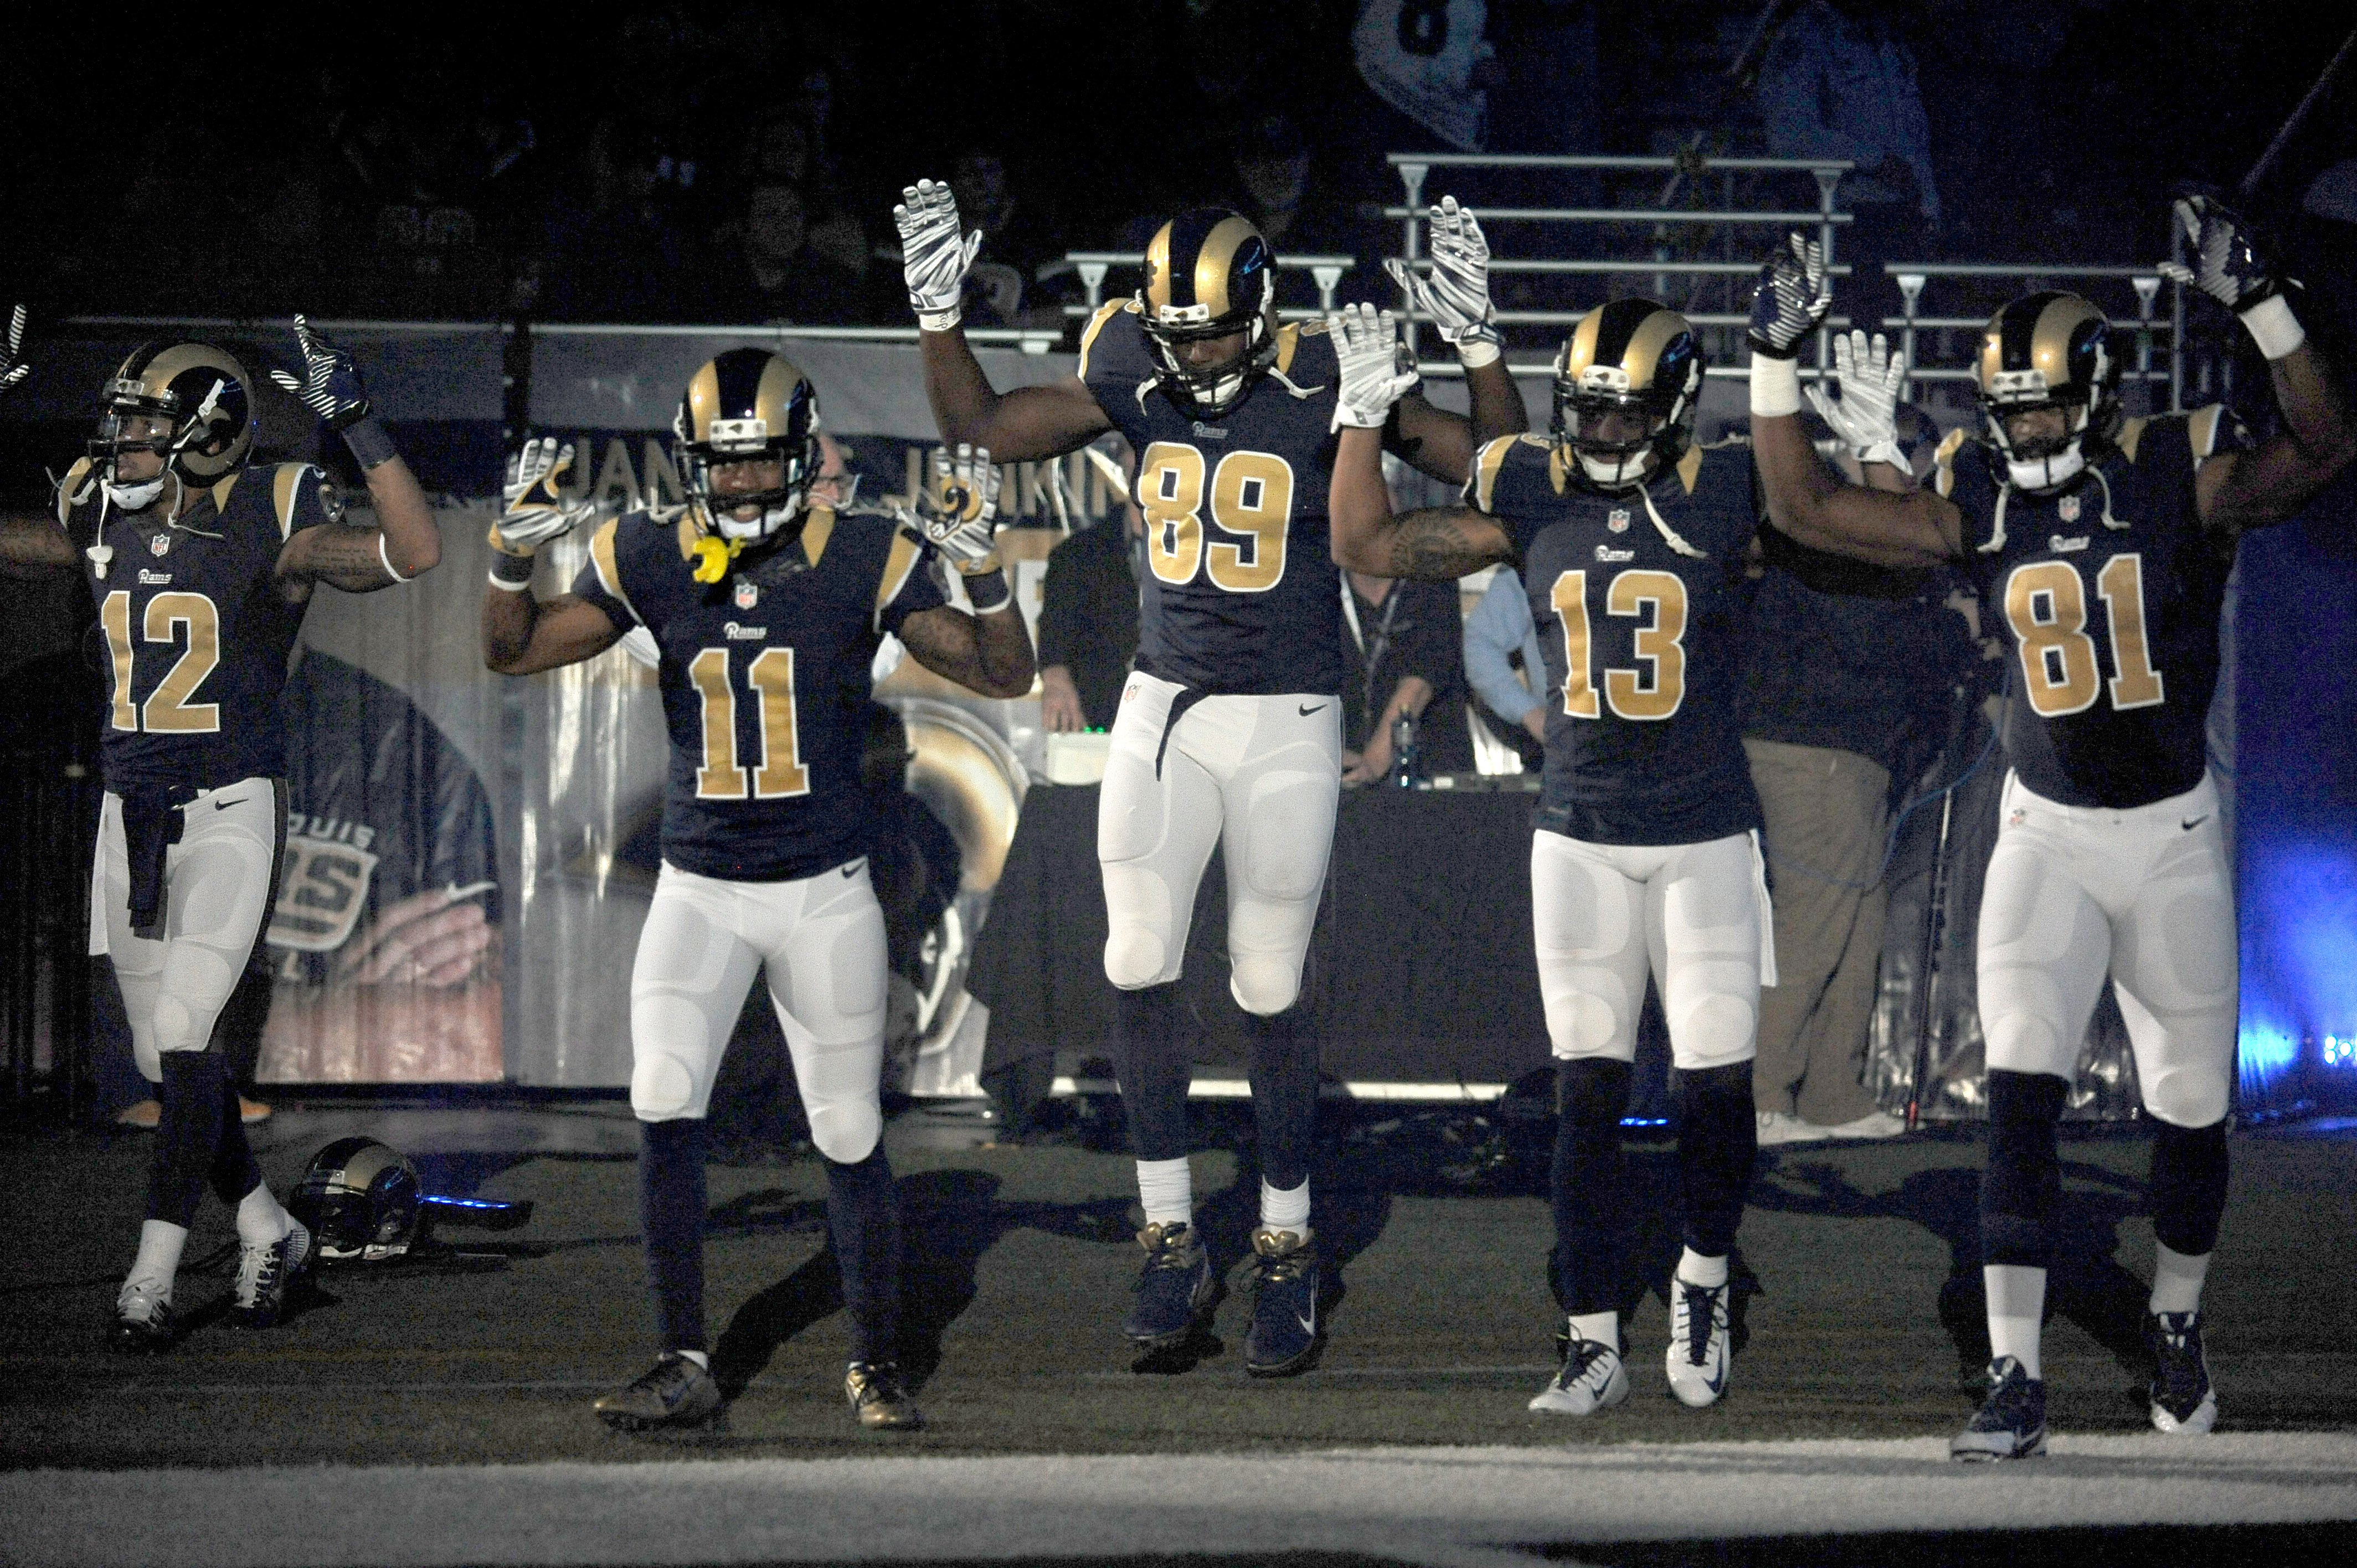 police group wants rams players disciplined for hands up gesture nfl declines nfl stltoday com